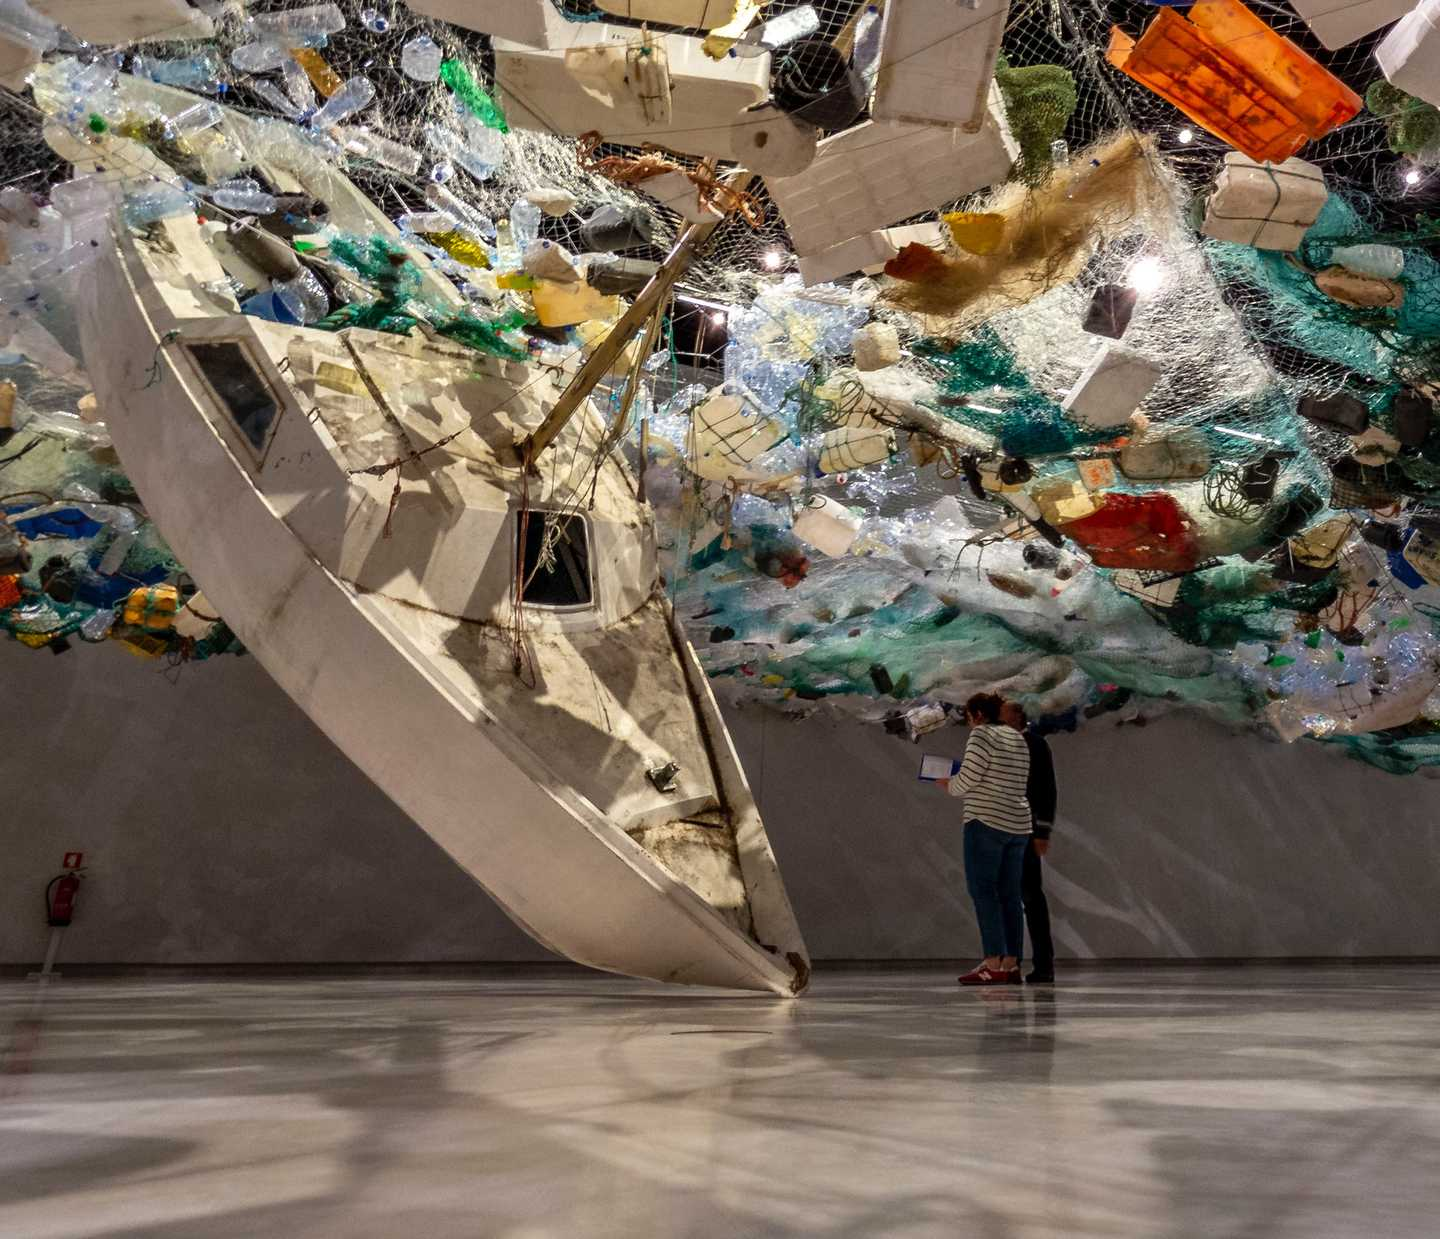 A boat and an art installation made using rubbish